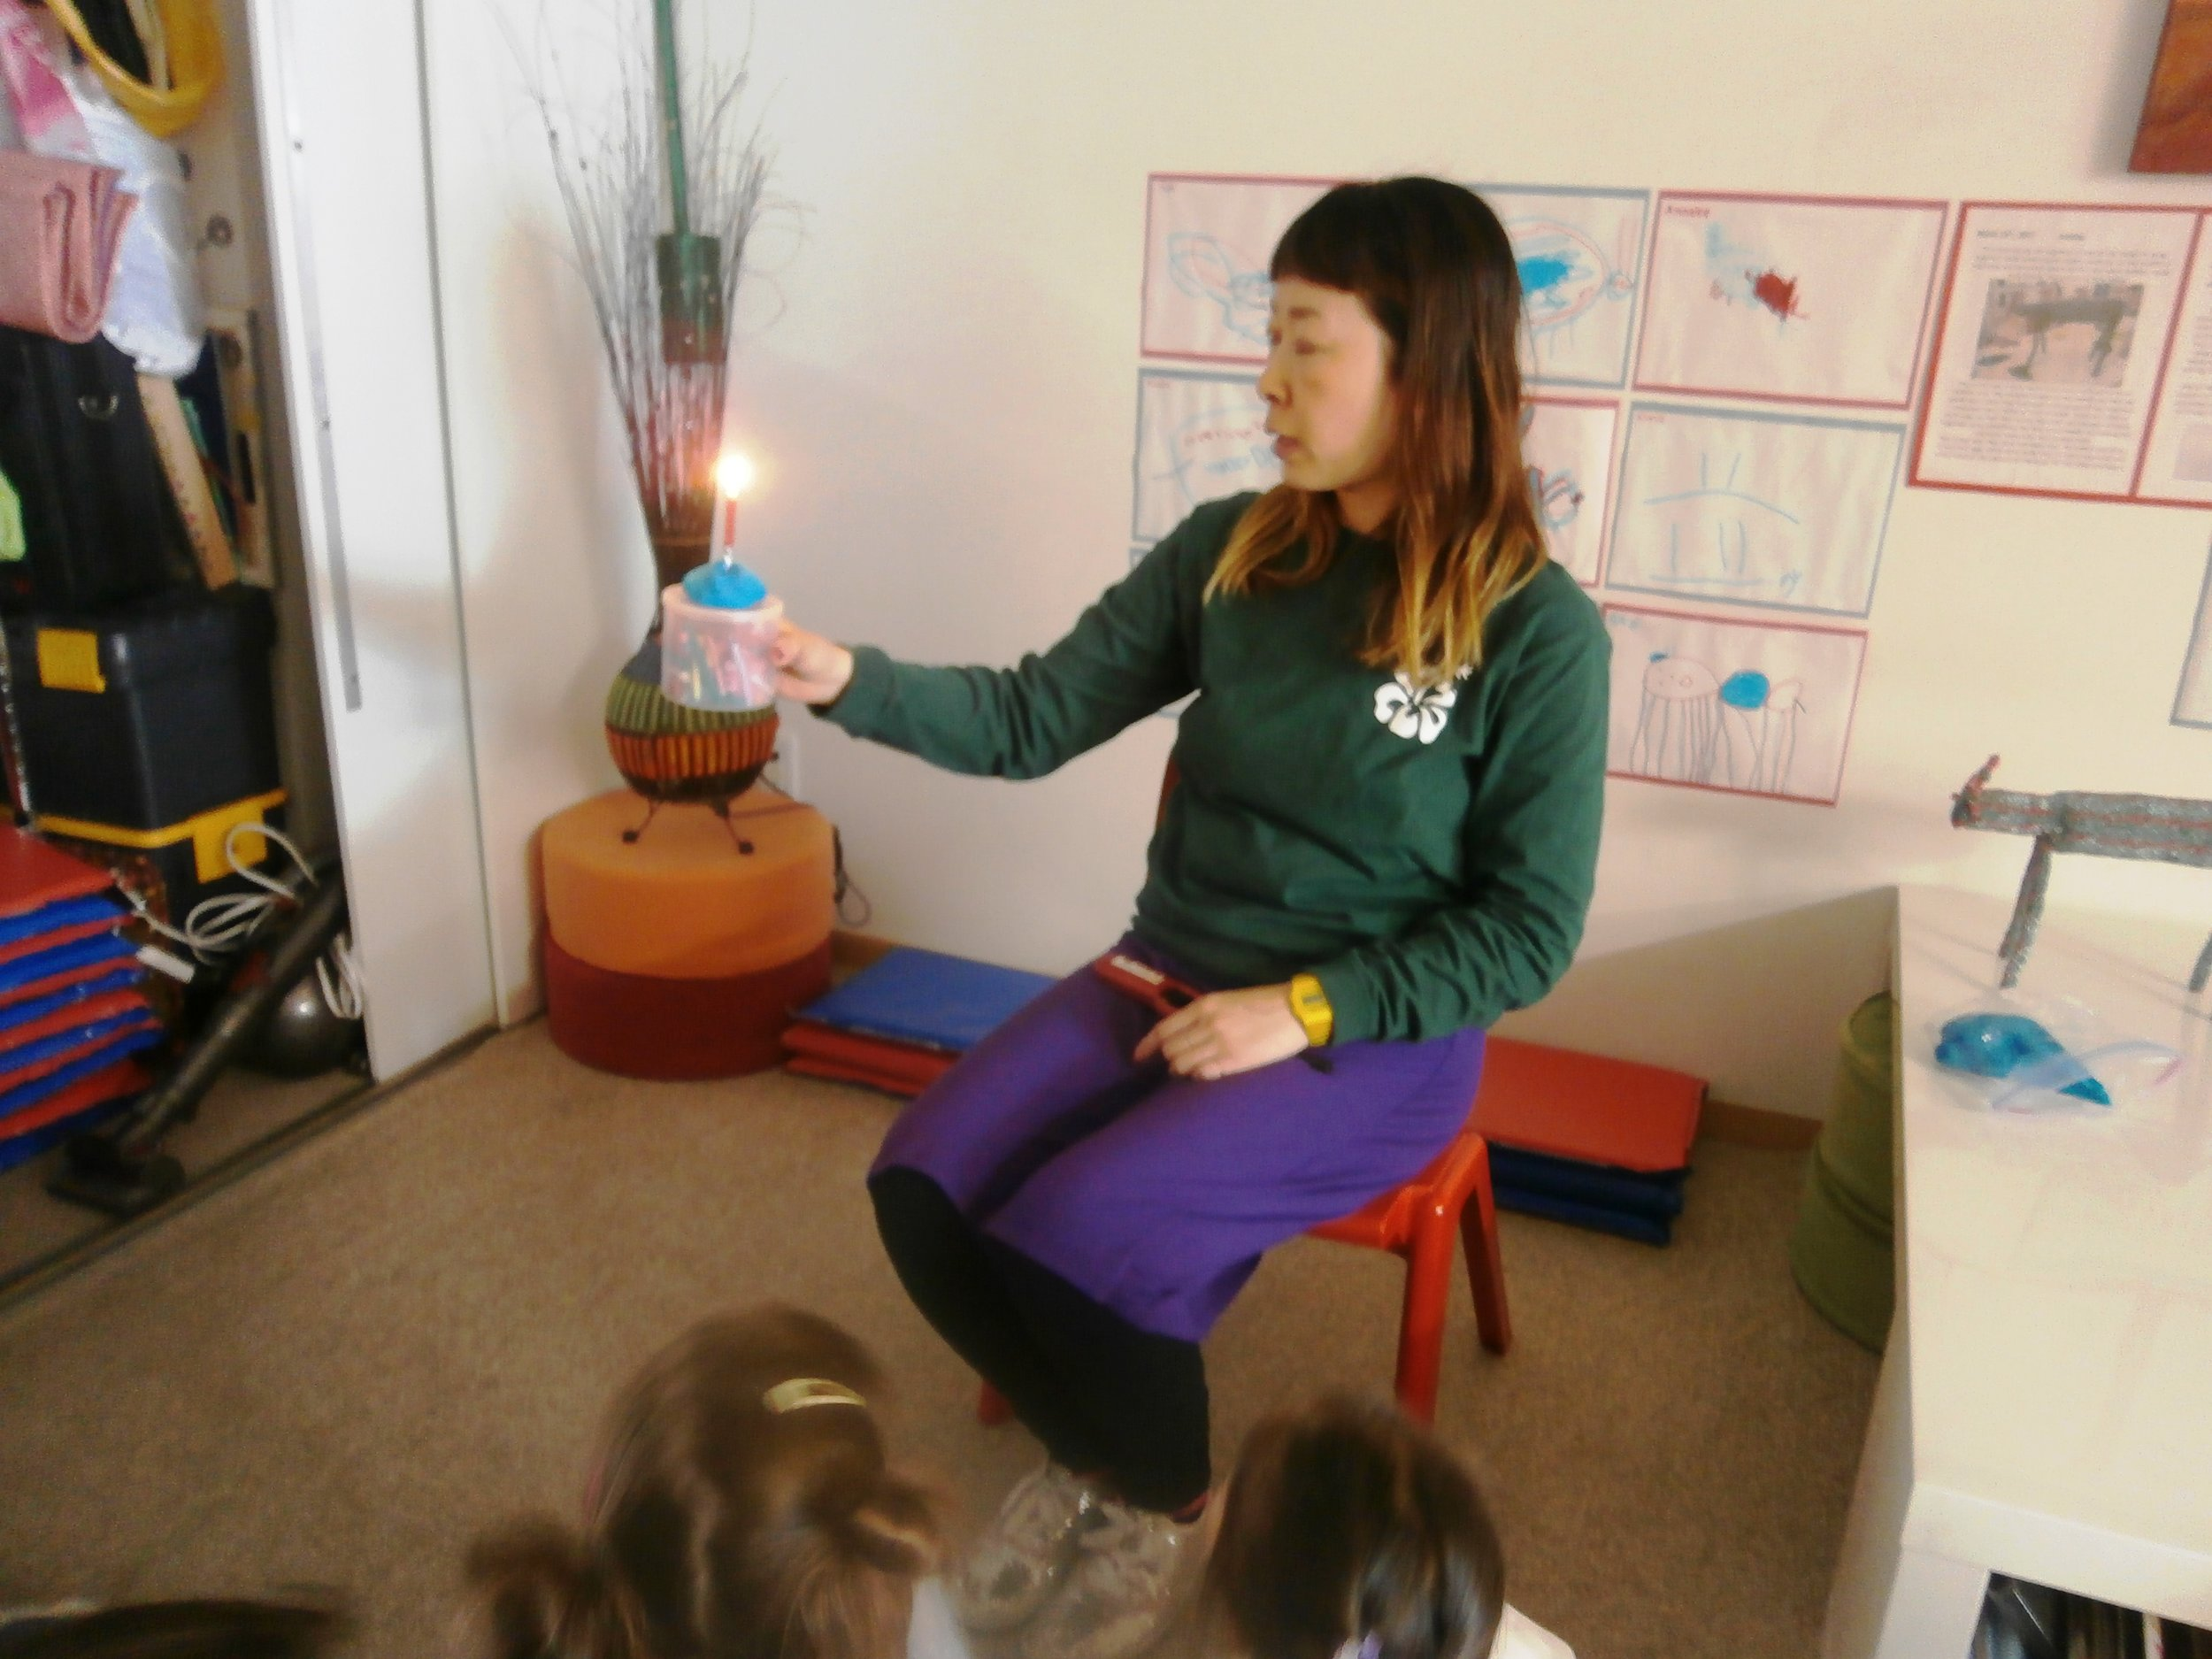 """Focus on the candlelight."" Hisami urged us during our meditation session with her."